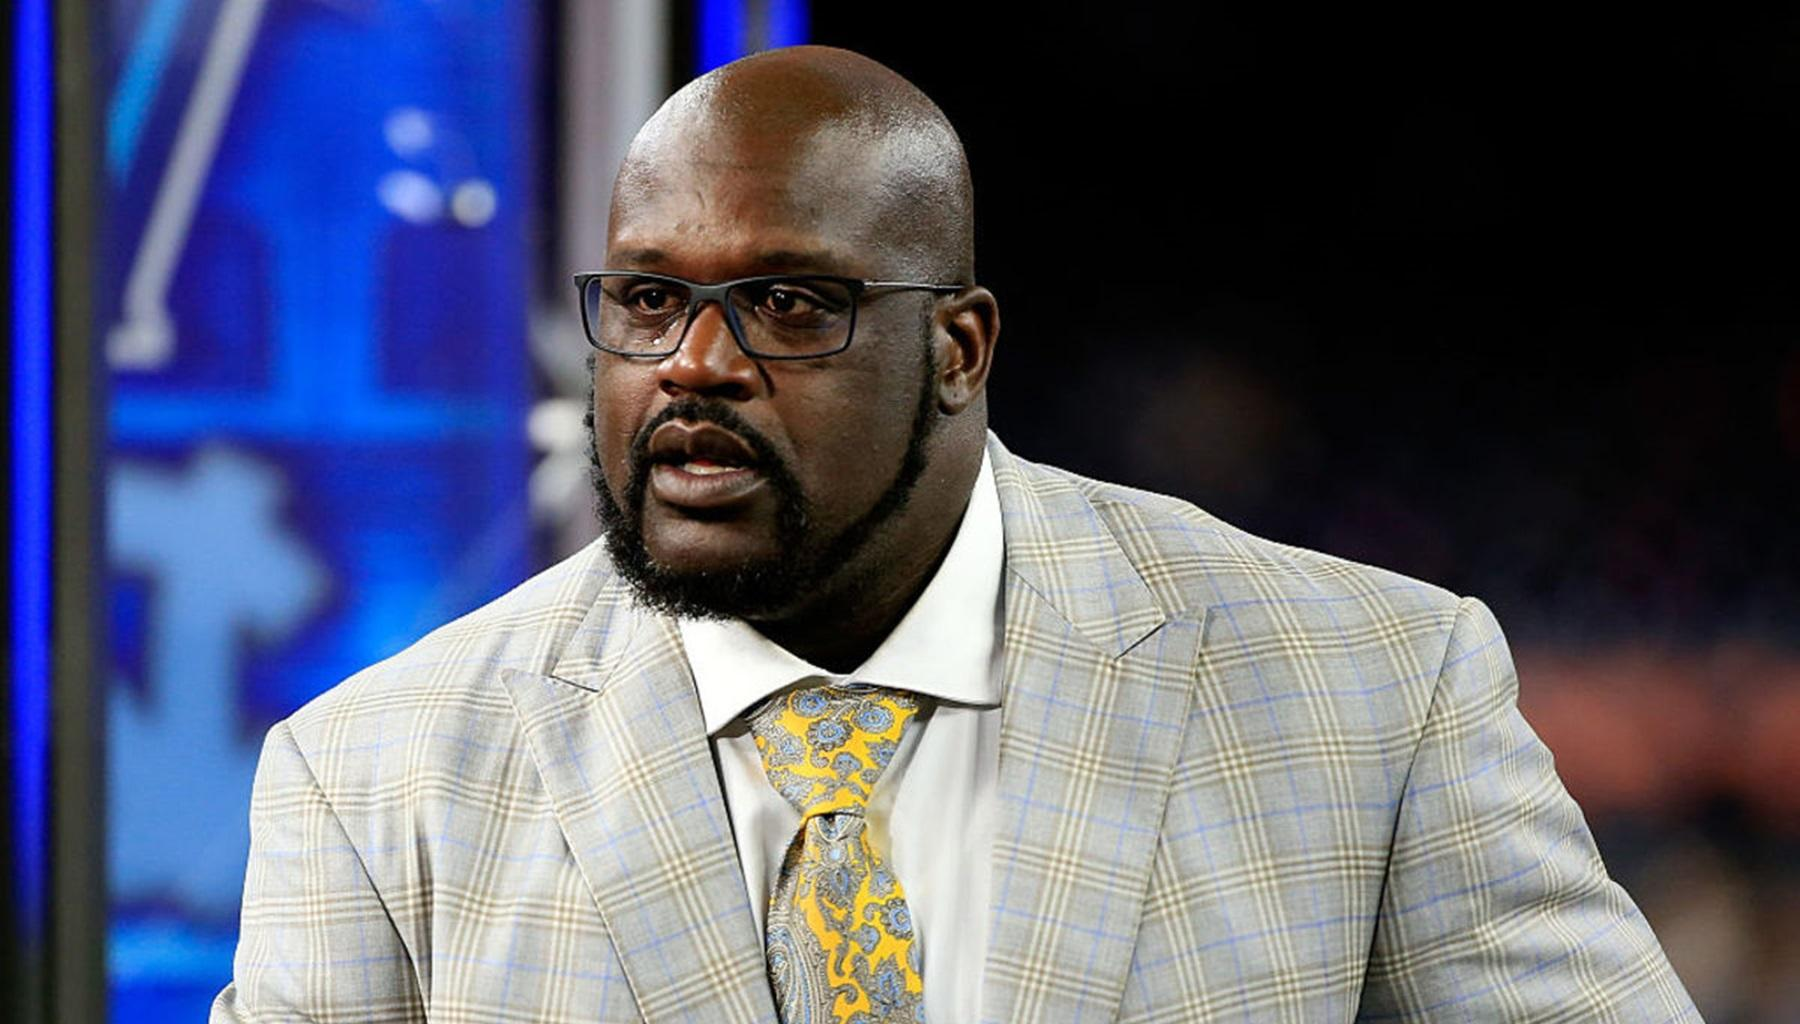 Shaquille O'Neal Continues To Cement His Legacy With $80 Million Project -- NBA Legend Is Making Shaunie O'Neal And His Children Proud